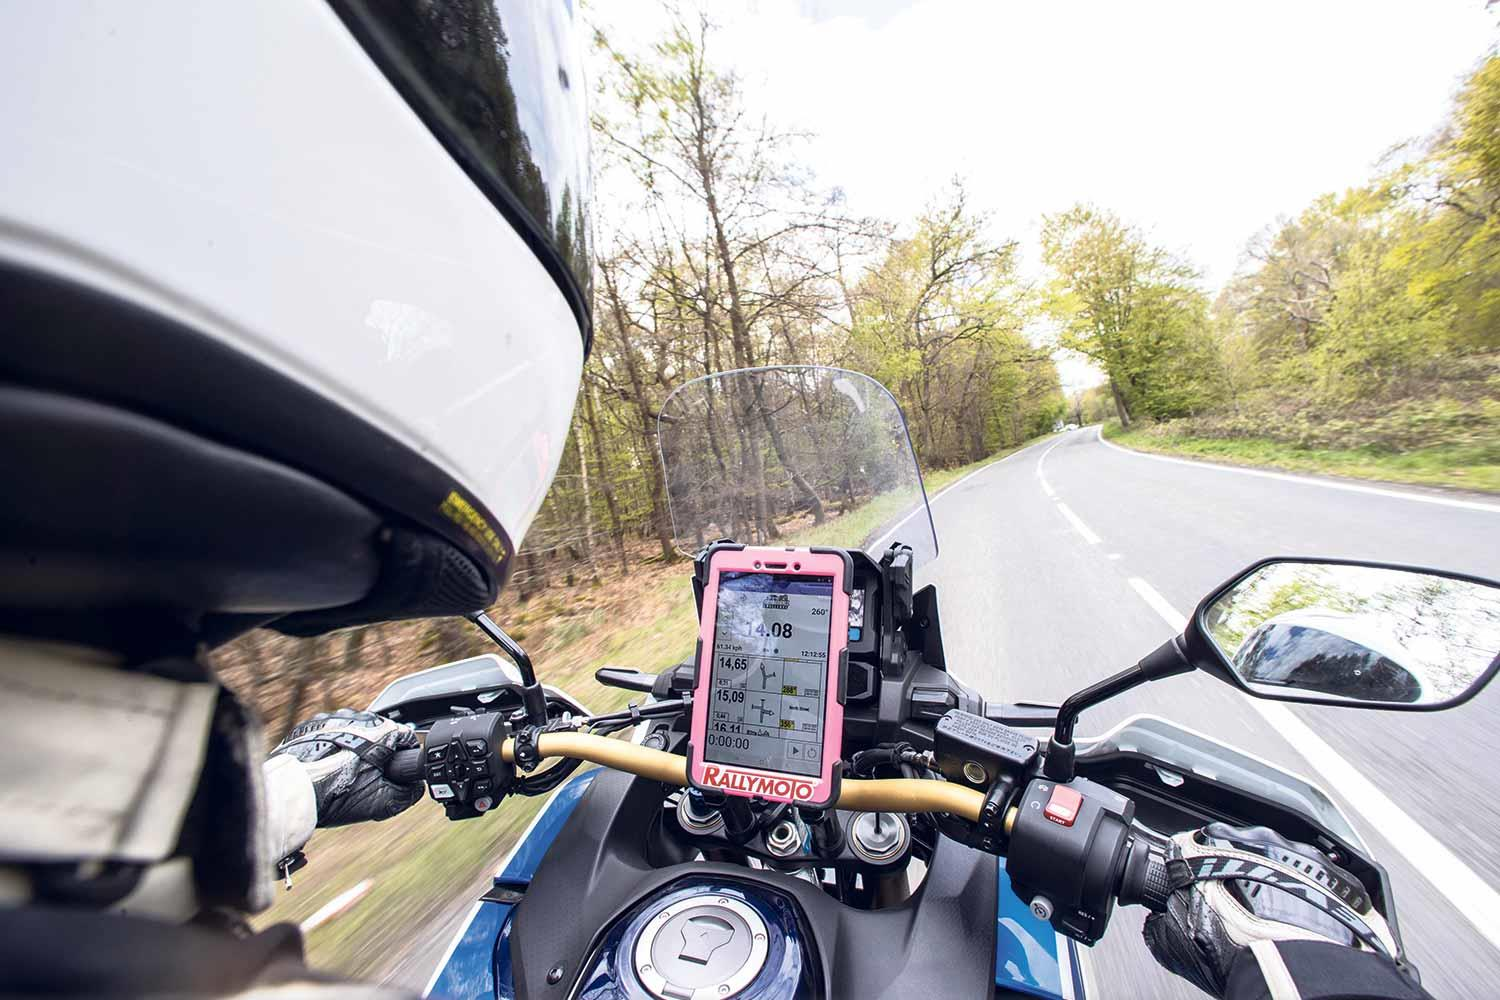 Rallymoto bring their popular navigation events to tarmac-only riders